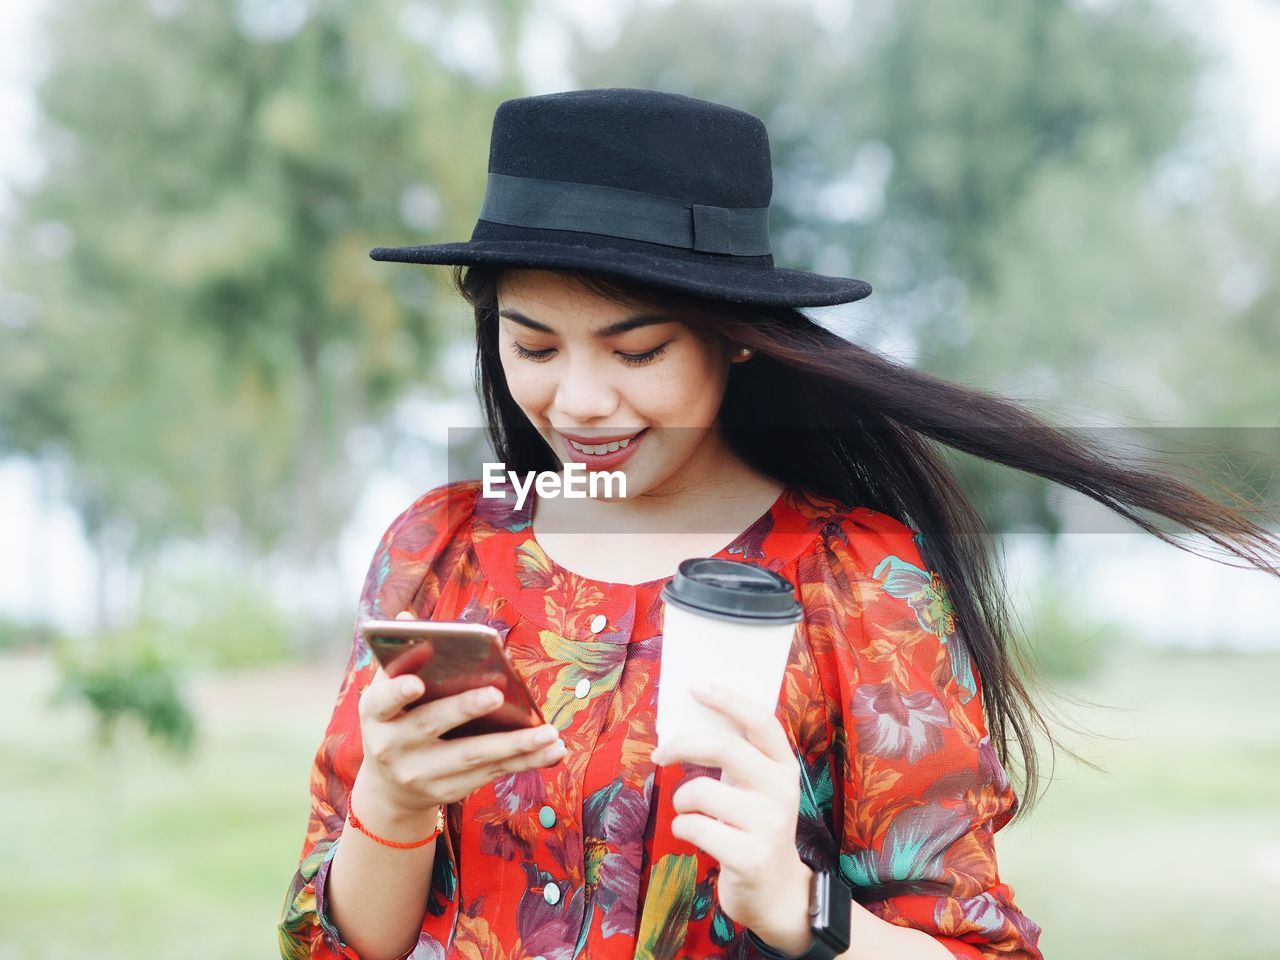 wireless technology, young adult, front view, real people, mobile phone, leisure activity, one person, clothing, hat, smiling, lifestyles, technology, holding, happiness, focus on foreground, young women, casual clothing, portable information device, connection, smart phone, outdoors, hairstyle, beautiful woman